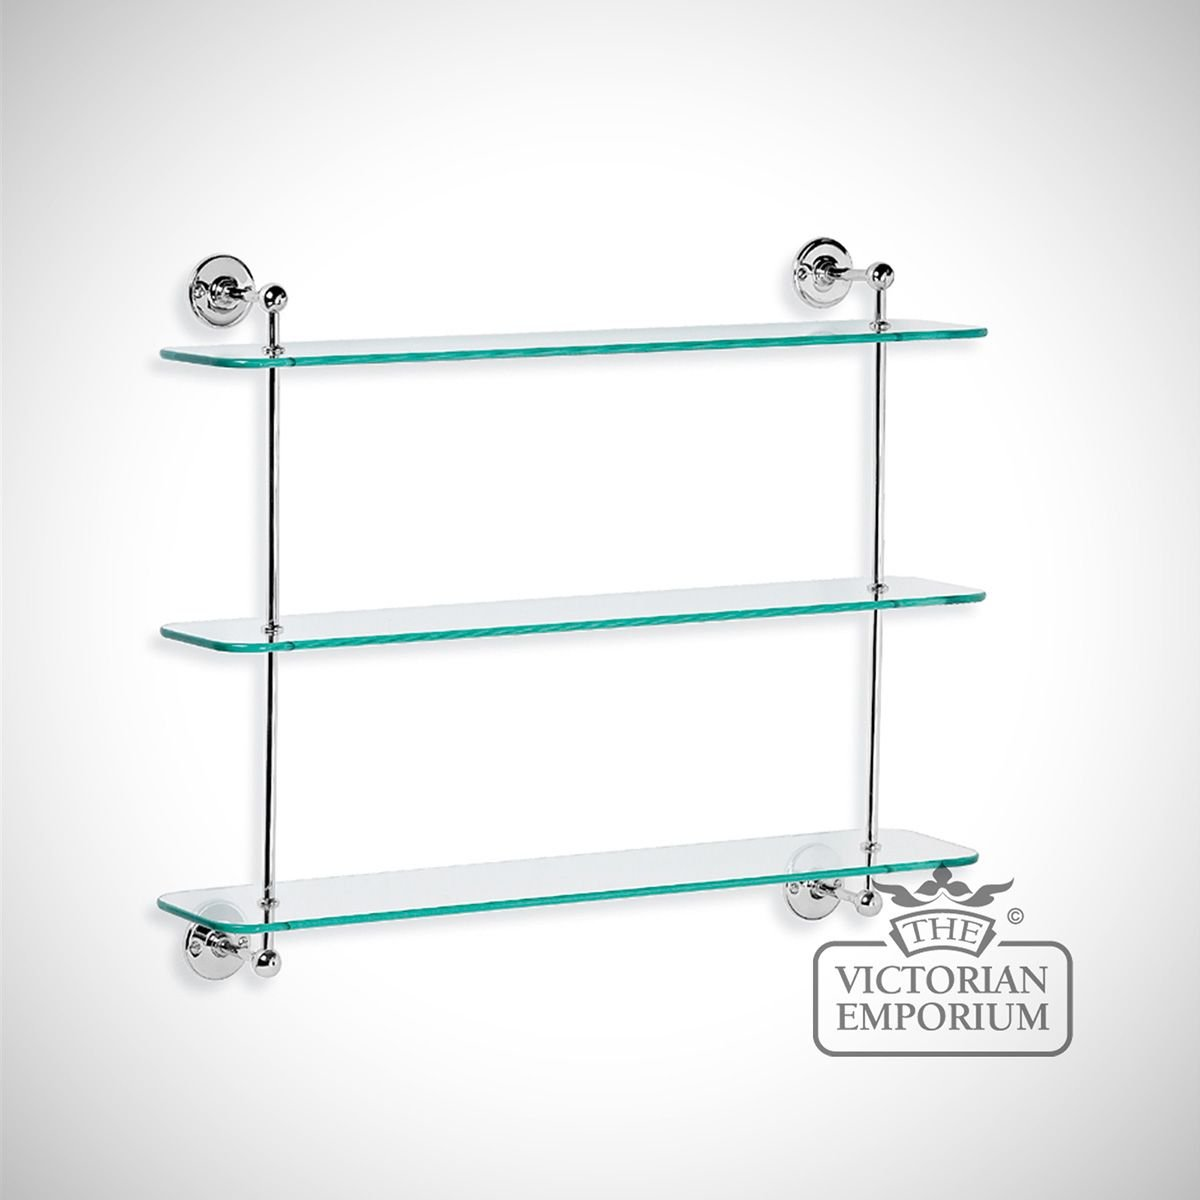 Three Tier Bathroom Stand: Three Tier Glass Shelf